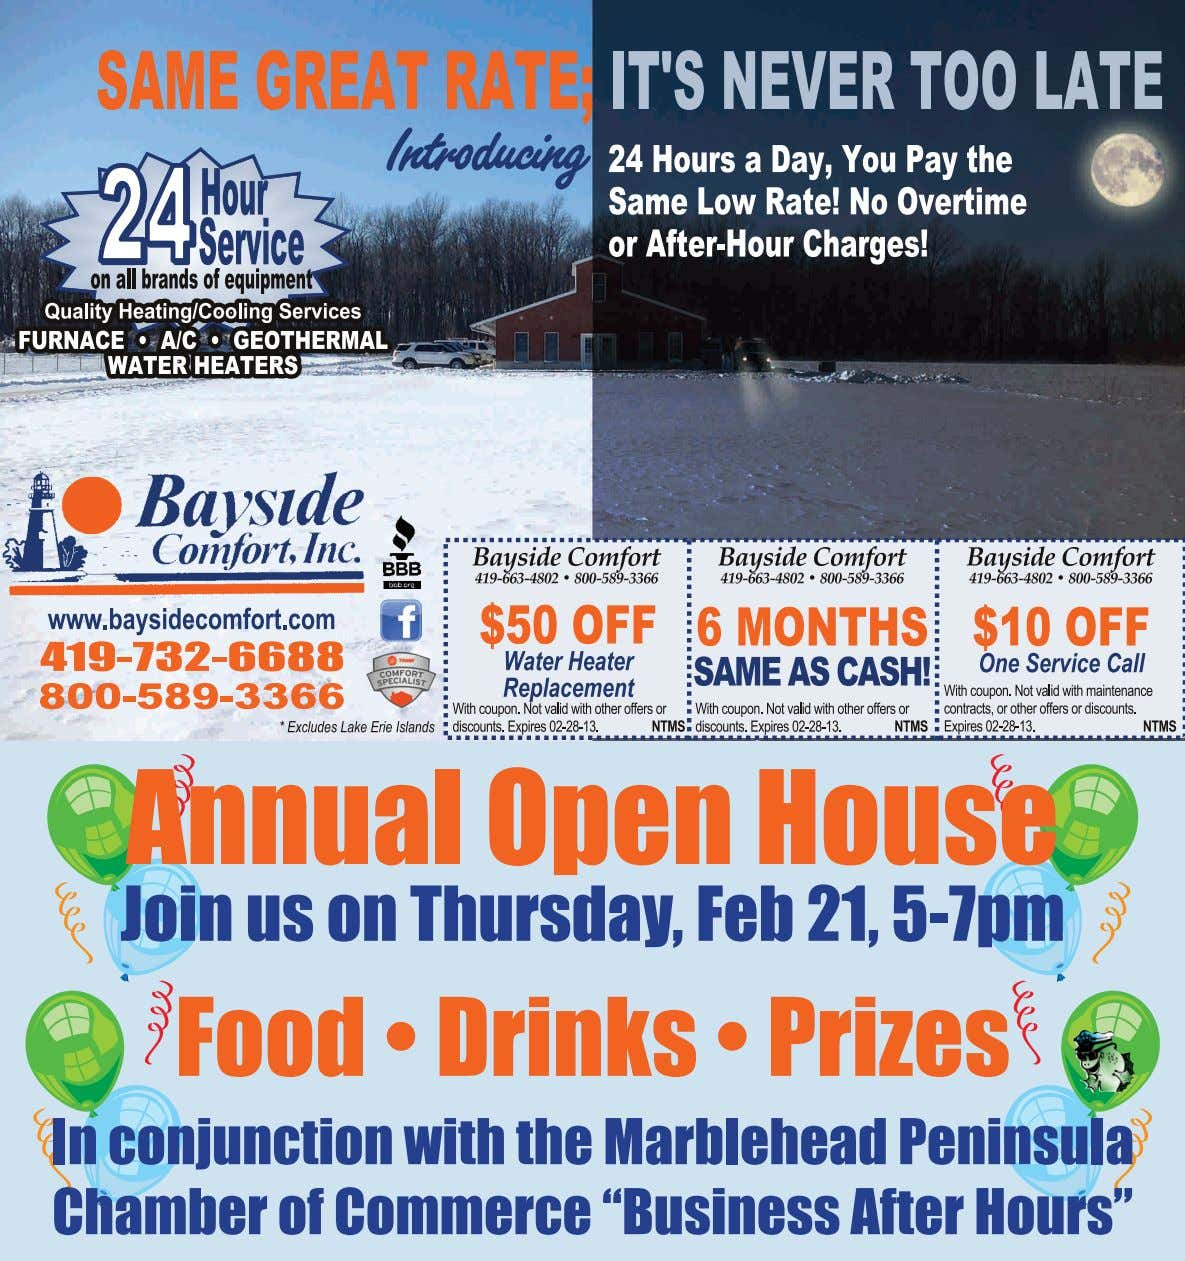 419-732-6688 Annual Open House Join us on Thursday, Feb 21, 5-7pm Food • Drinks •